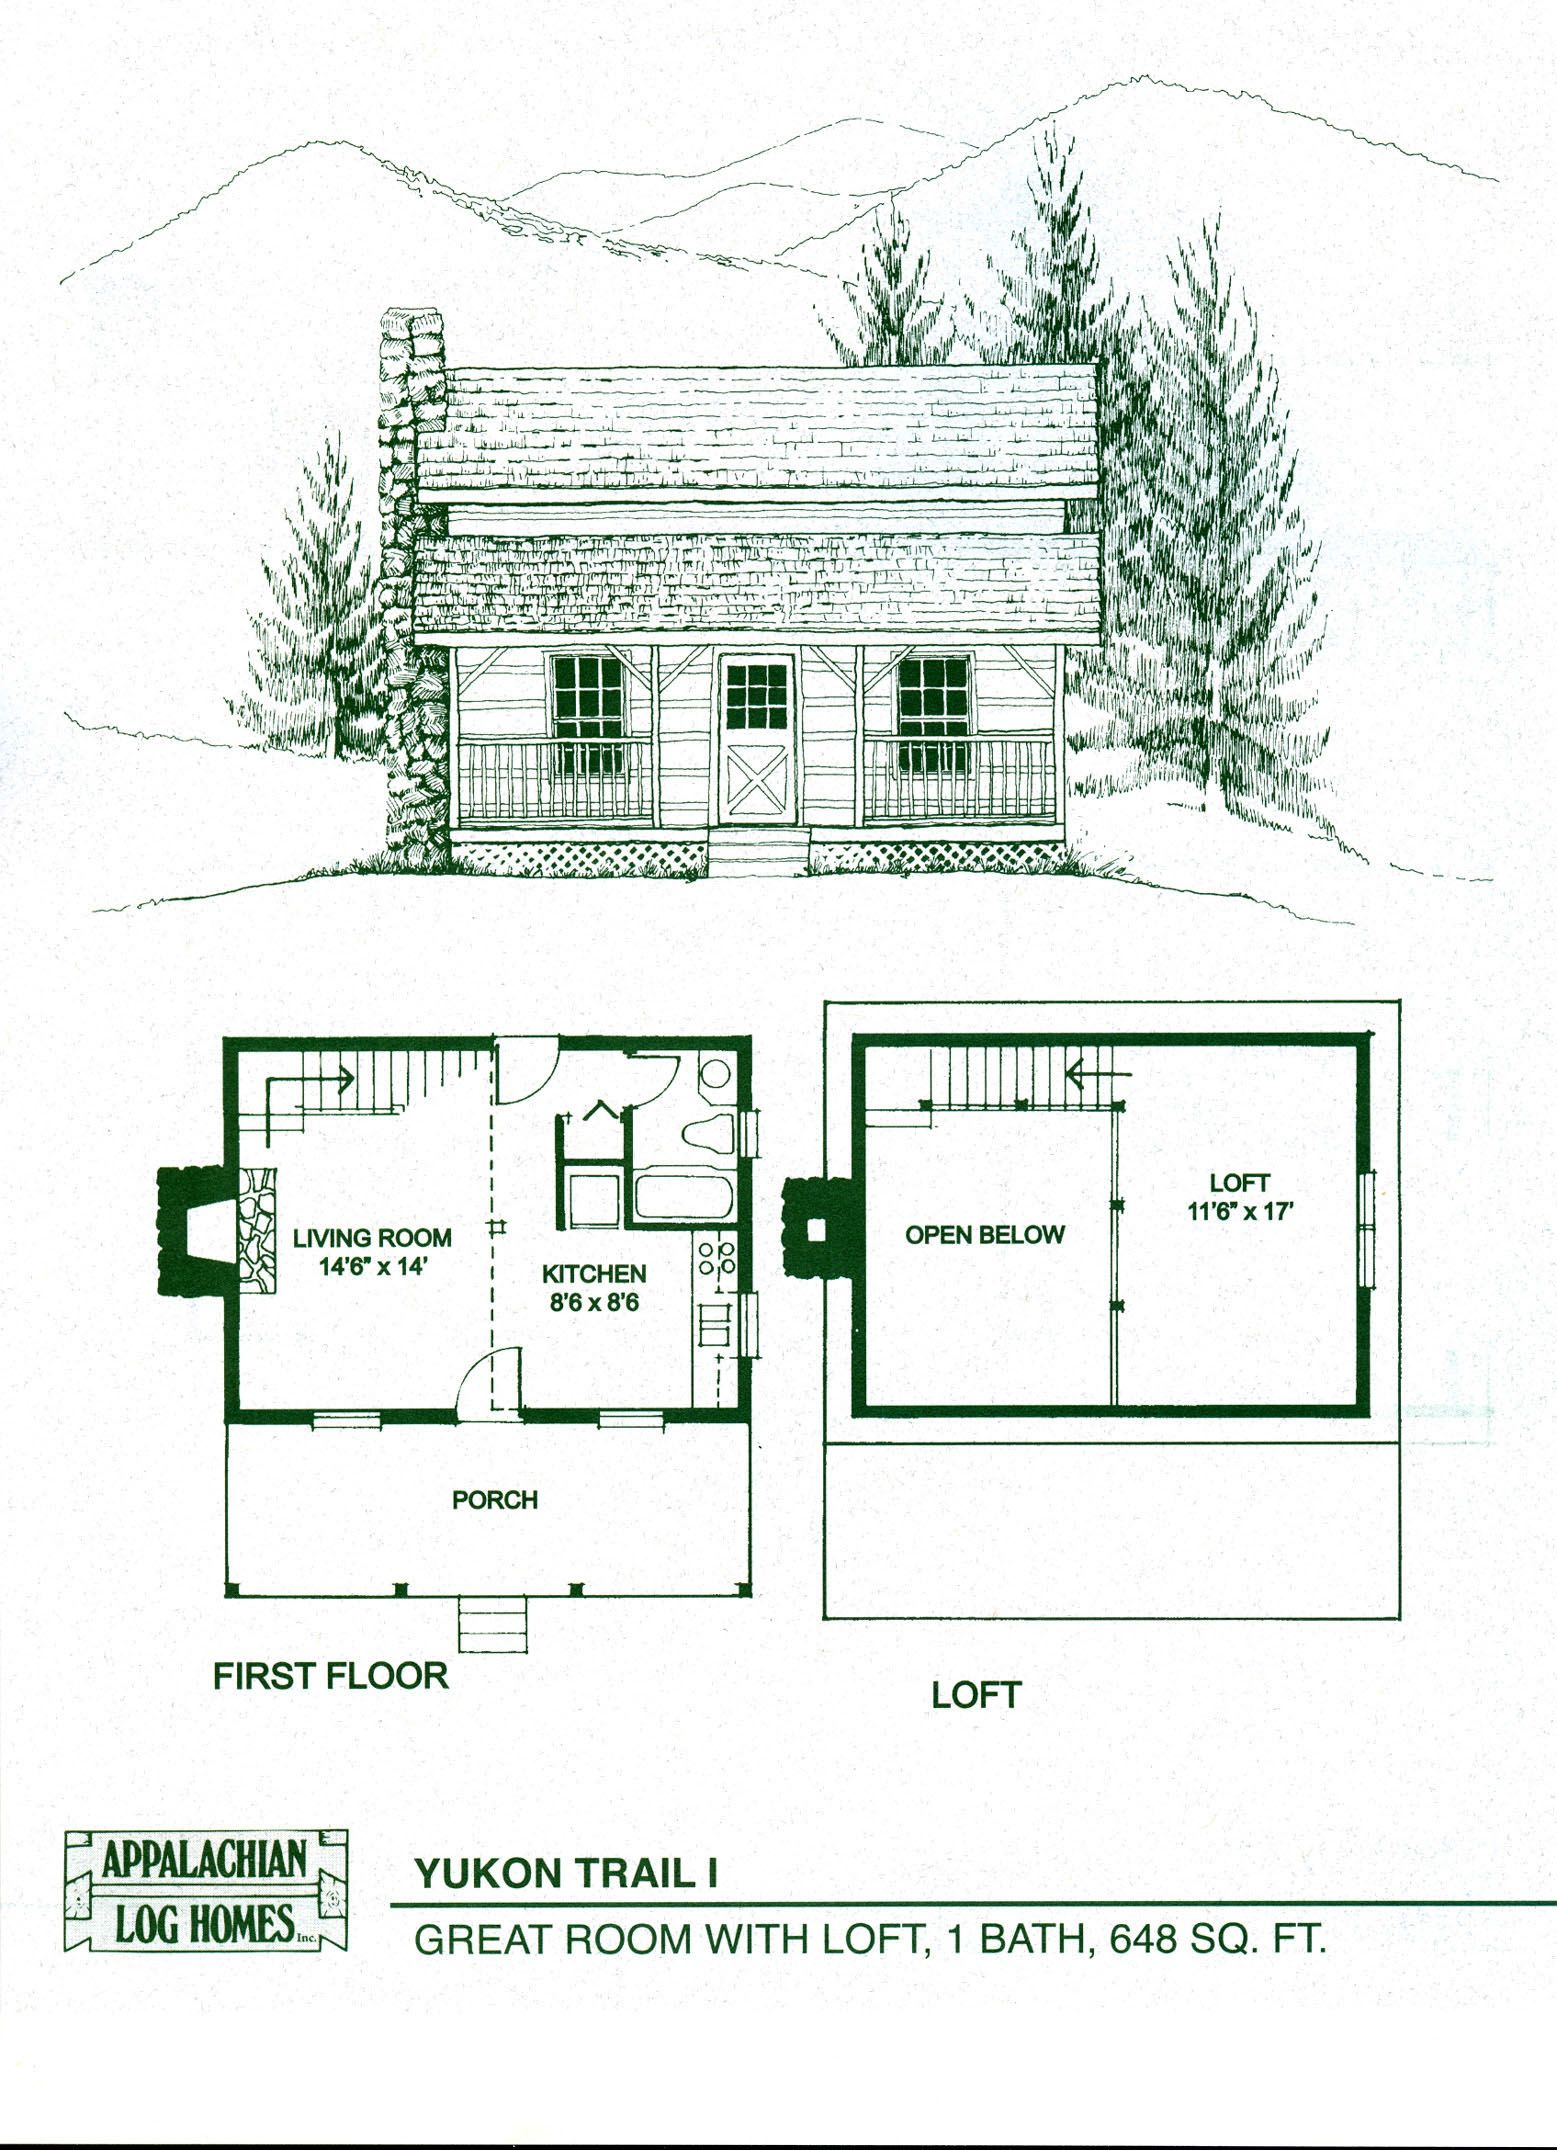 Log home floor plans log cabin kits appalachian log Cabin floor plans